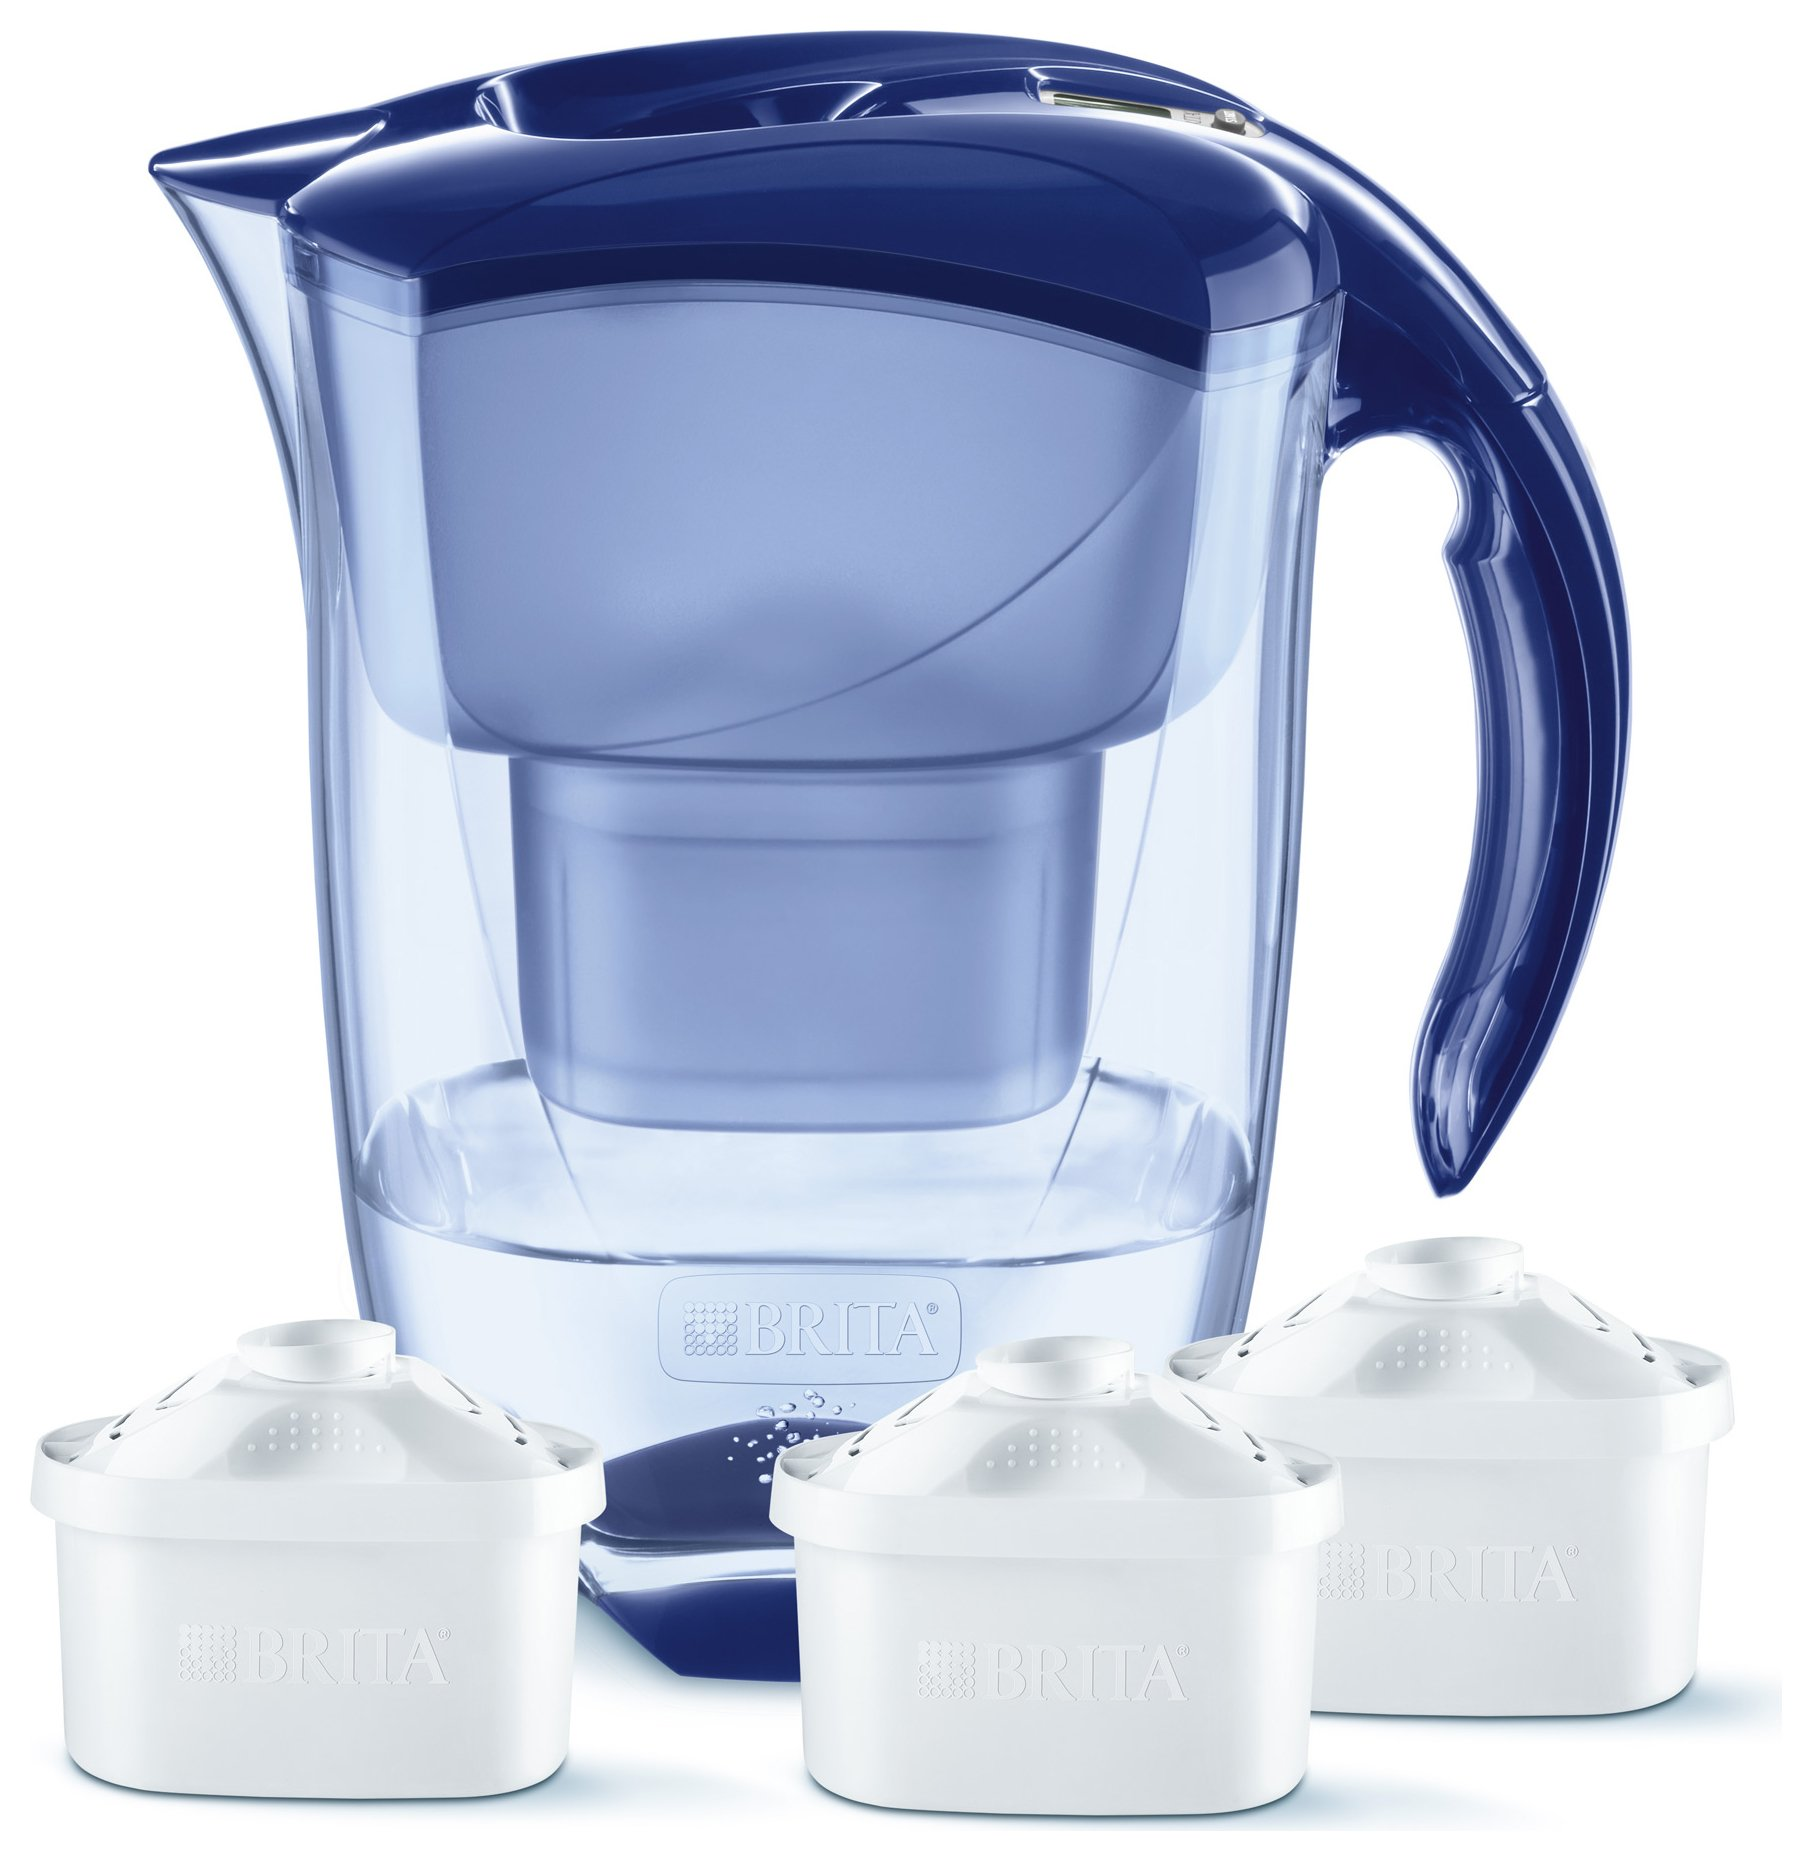 Image of BRITA - Elemaris Blue Jug Plus 3 Cartridges